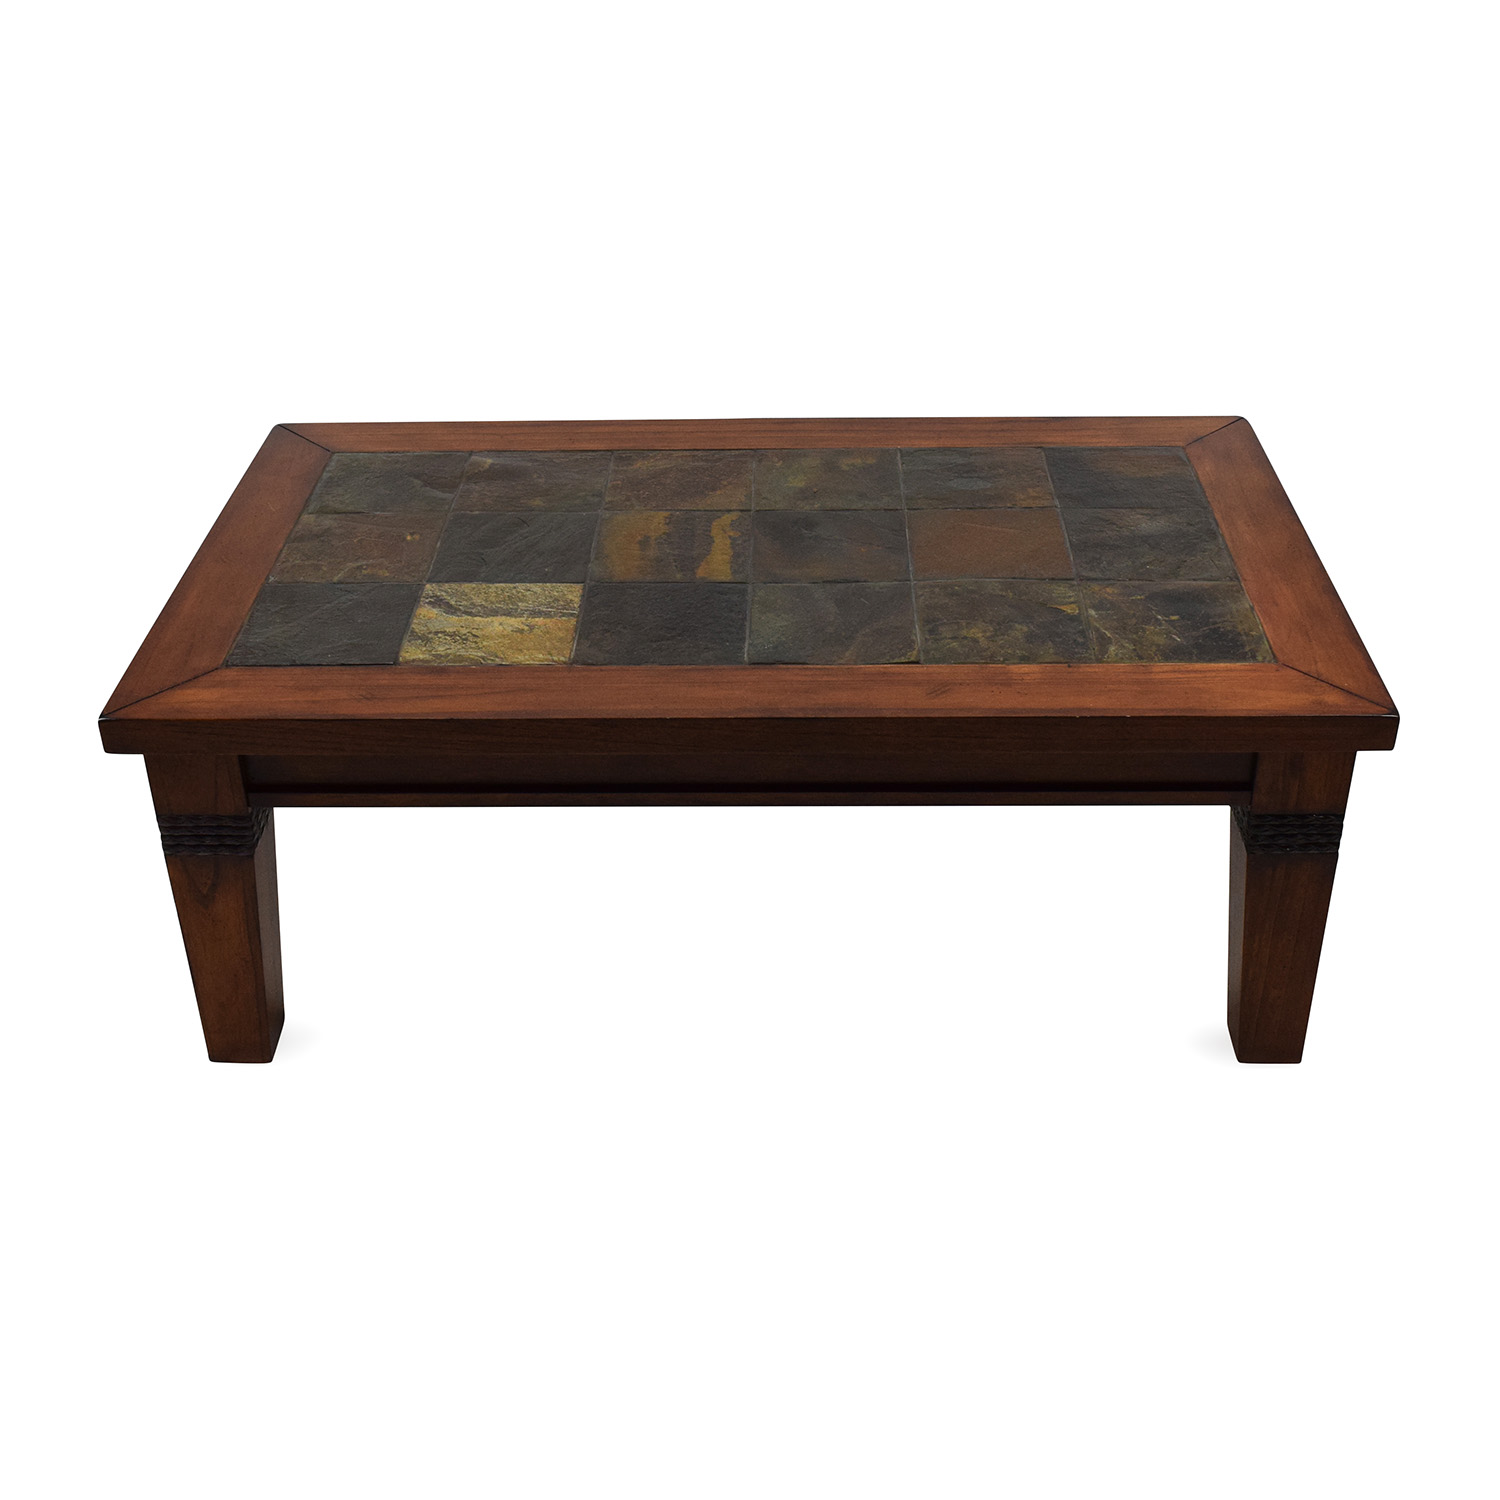 100 Used Furniture Sale Online India 77 Off Wooden U0026 Tiled Coffee Table Tables Home